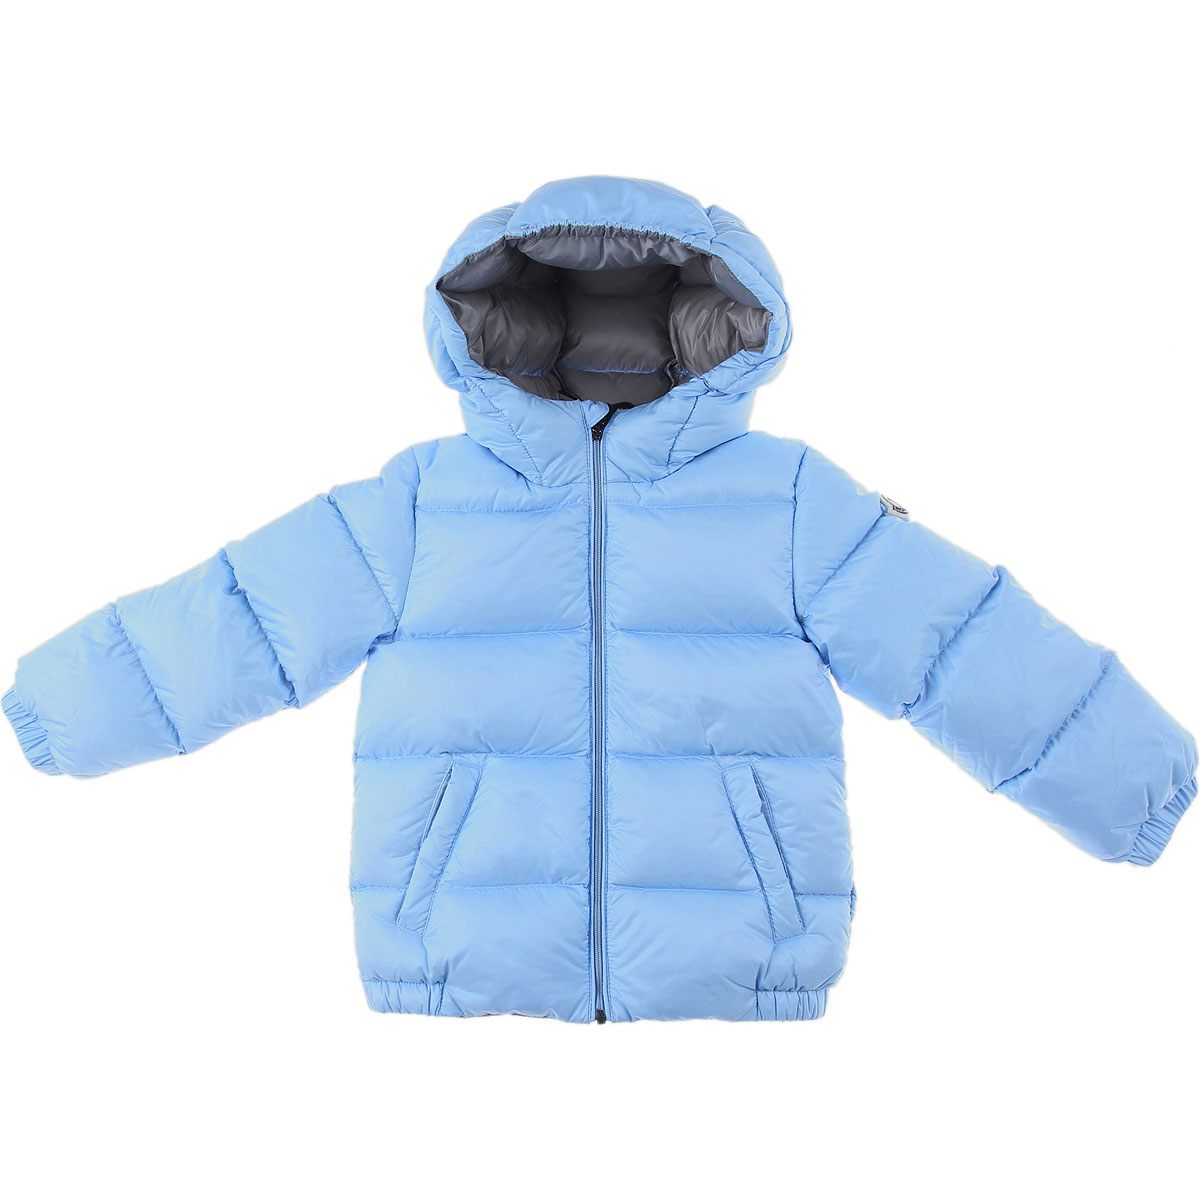 Moncler Baby Down Jacket for Boys On Sale, Skyblue, polyamide, 2019, 12 M 18M 3Y 9M